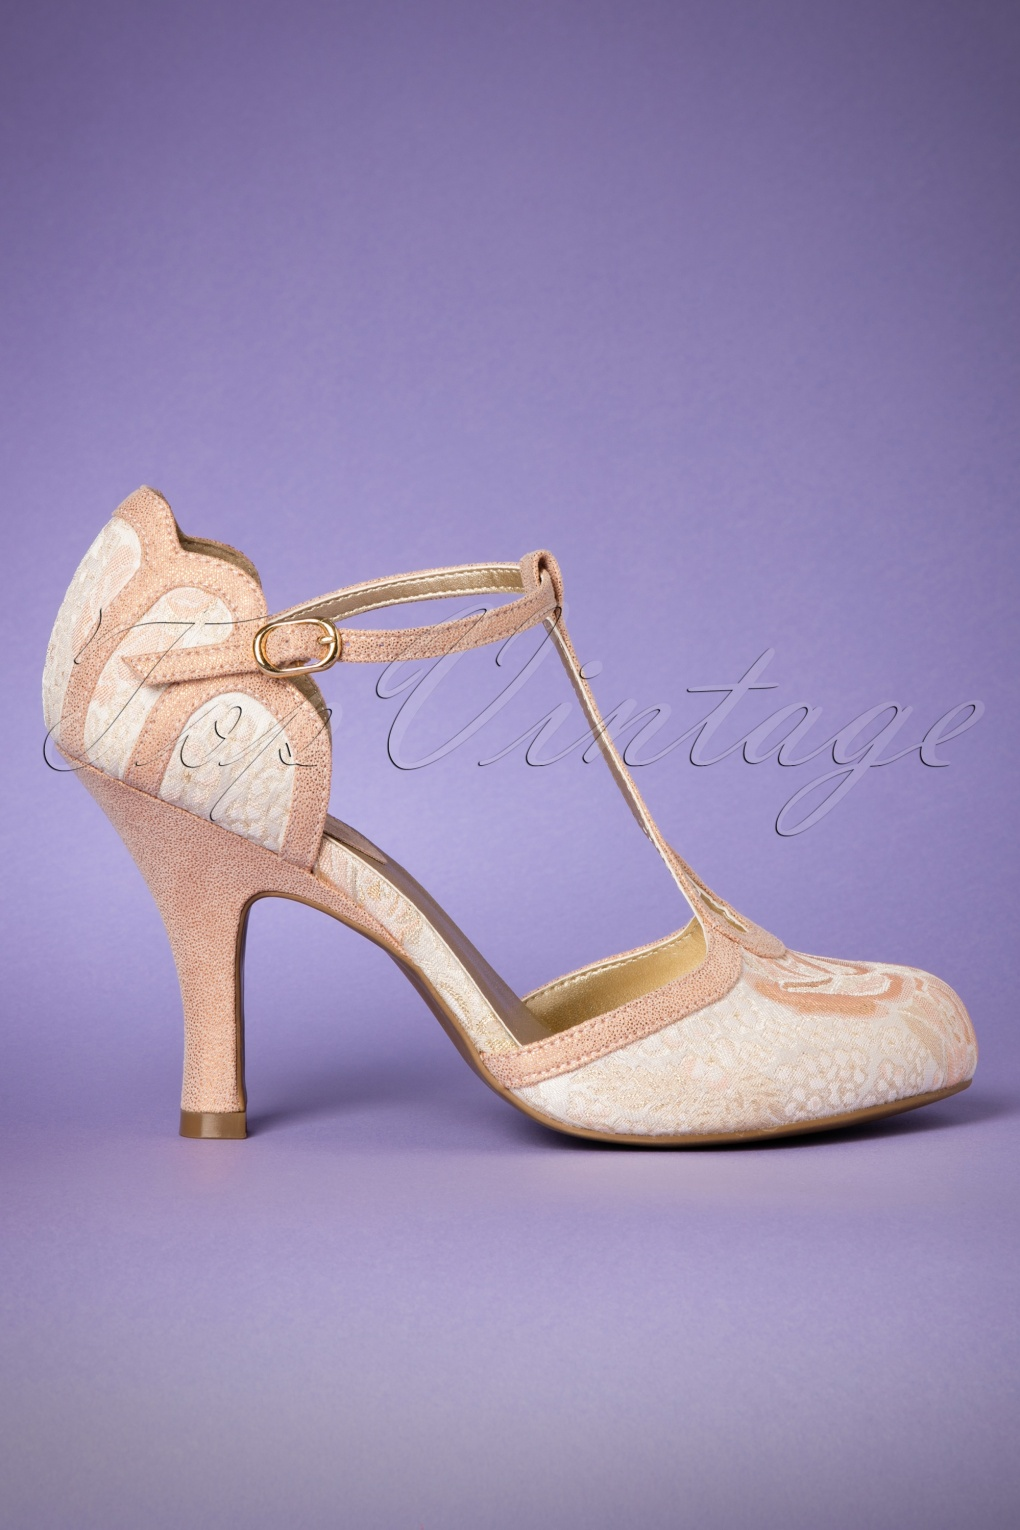 Vintage Style Shoes, Vintage Inspired Shoes 50s Polly T-Strap Pumps in Peach £70.63 AT vintagedancer.com